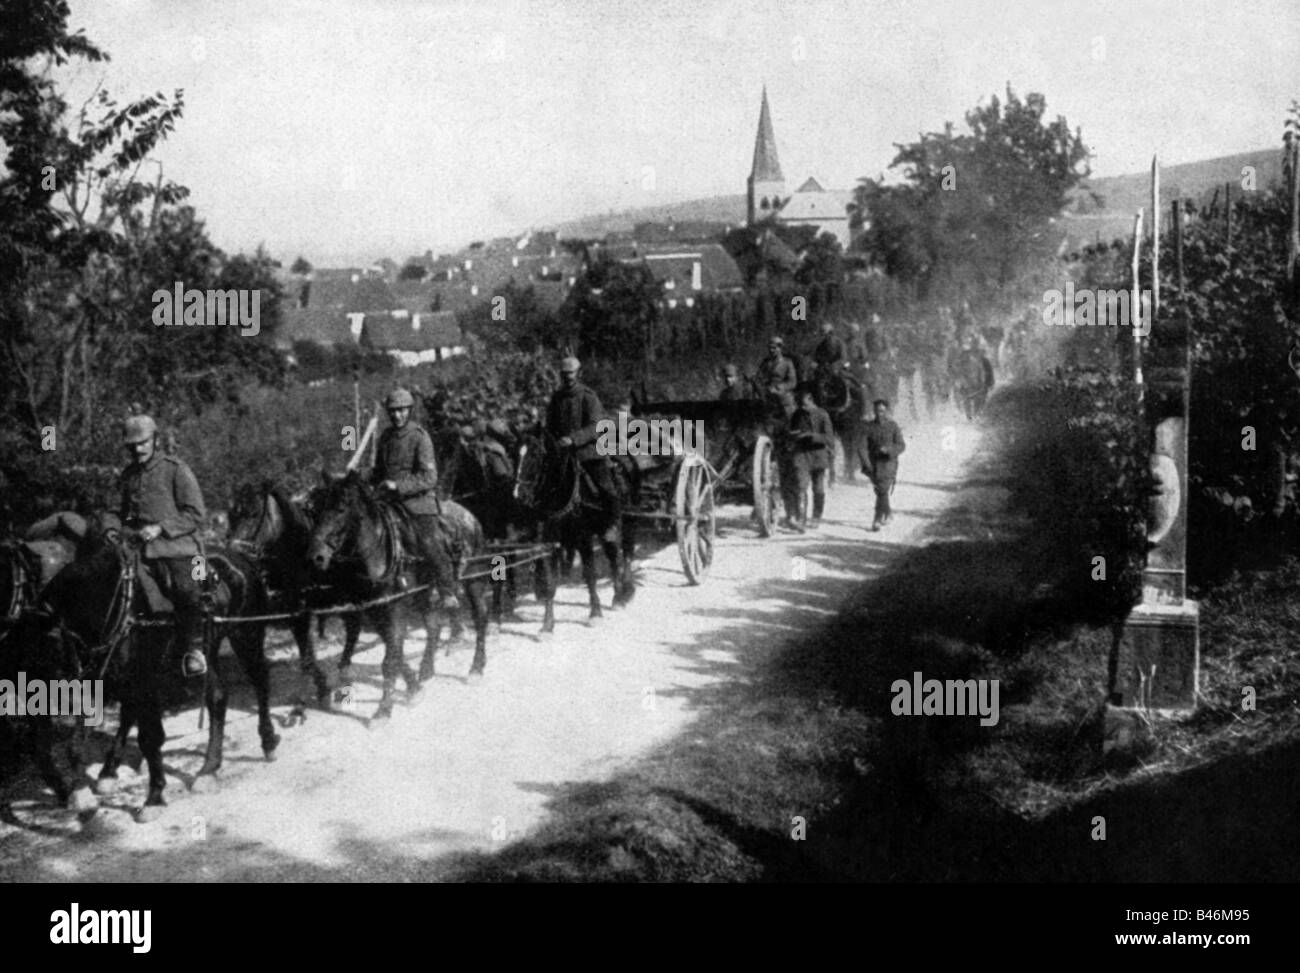 events, First World War / WWI, Western Front, advancing German artillery in Alsace-Lorraine, August 1914, Additional - Stock Image